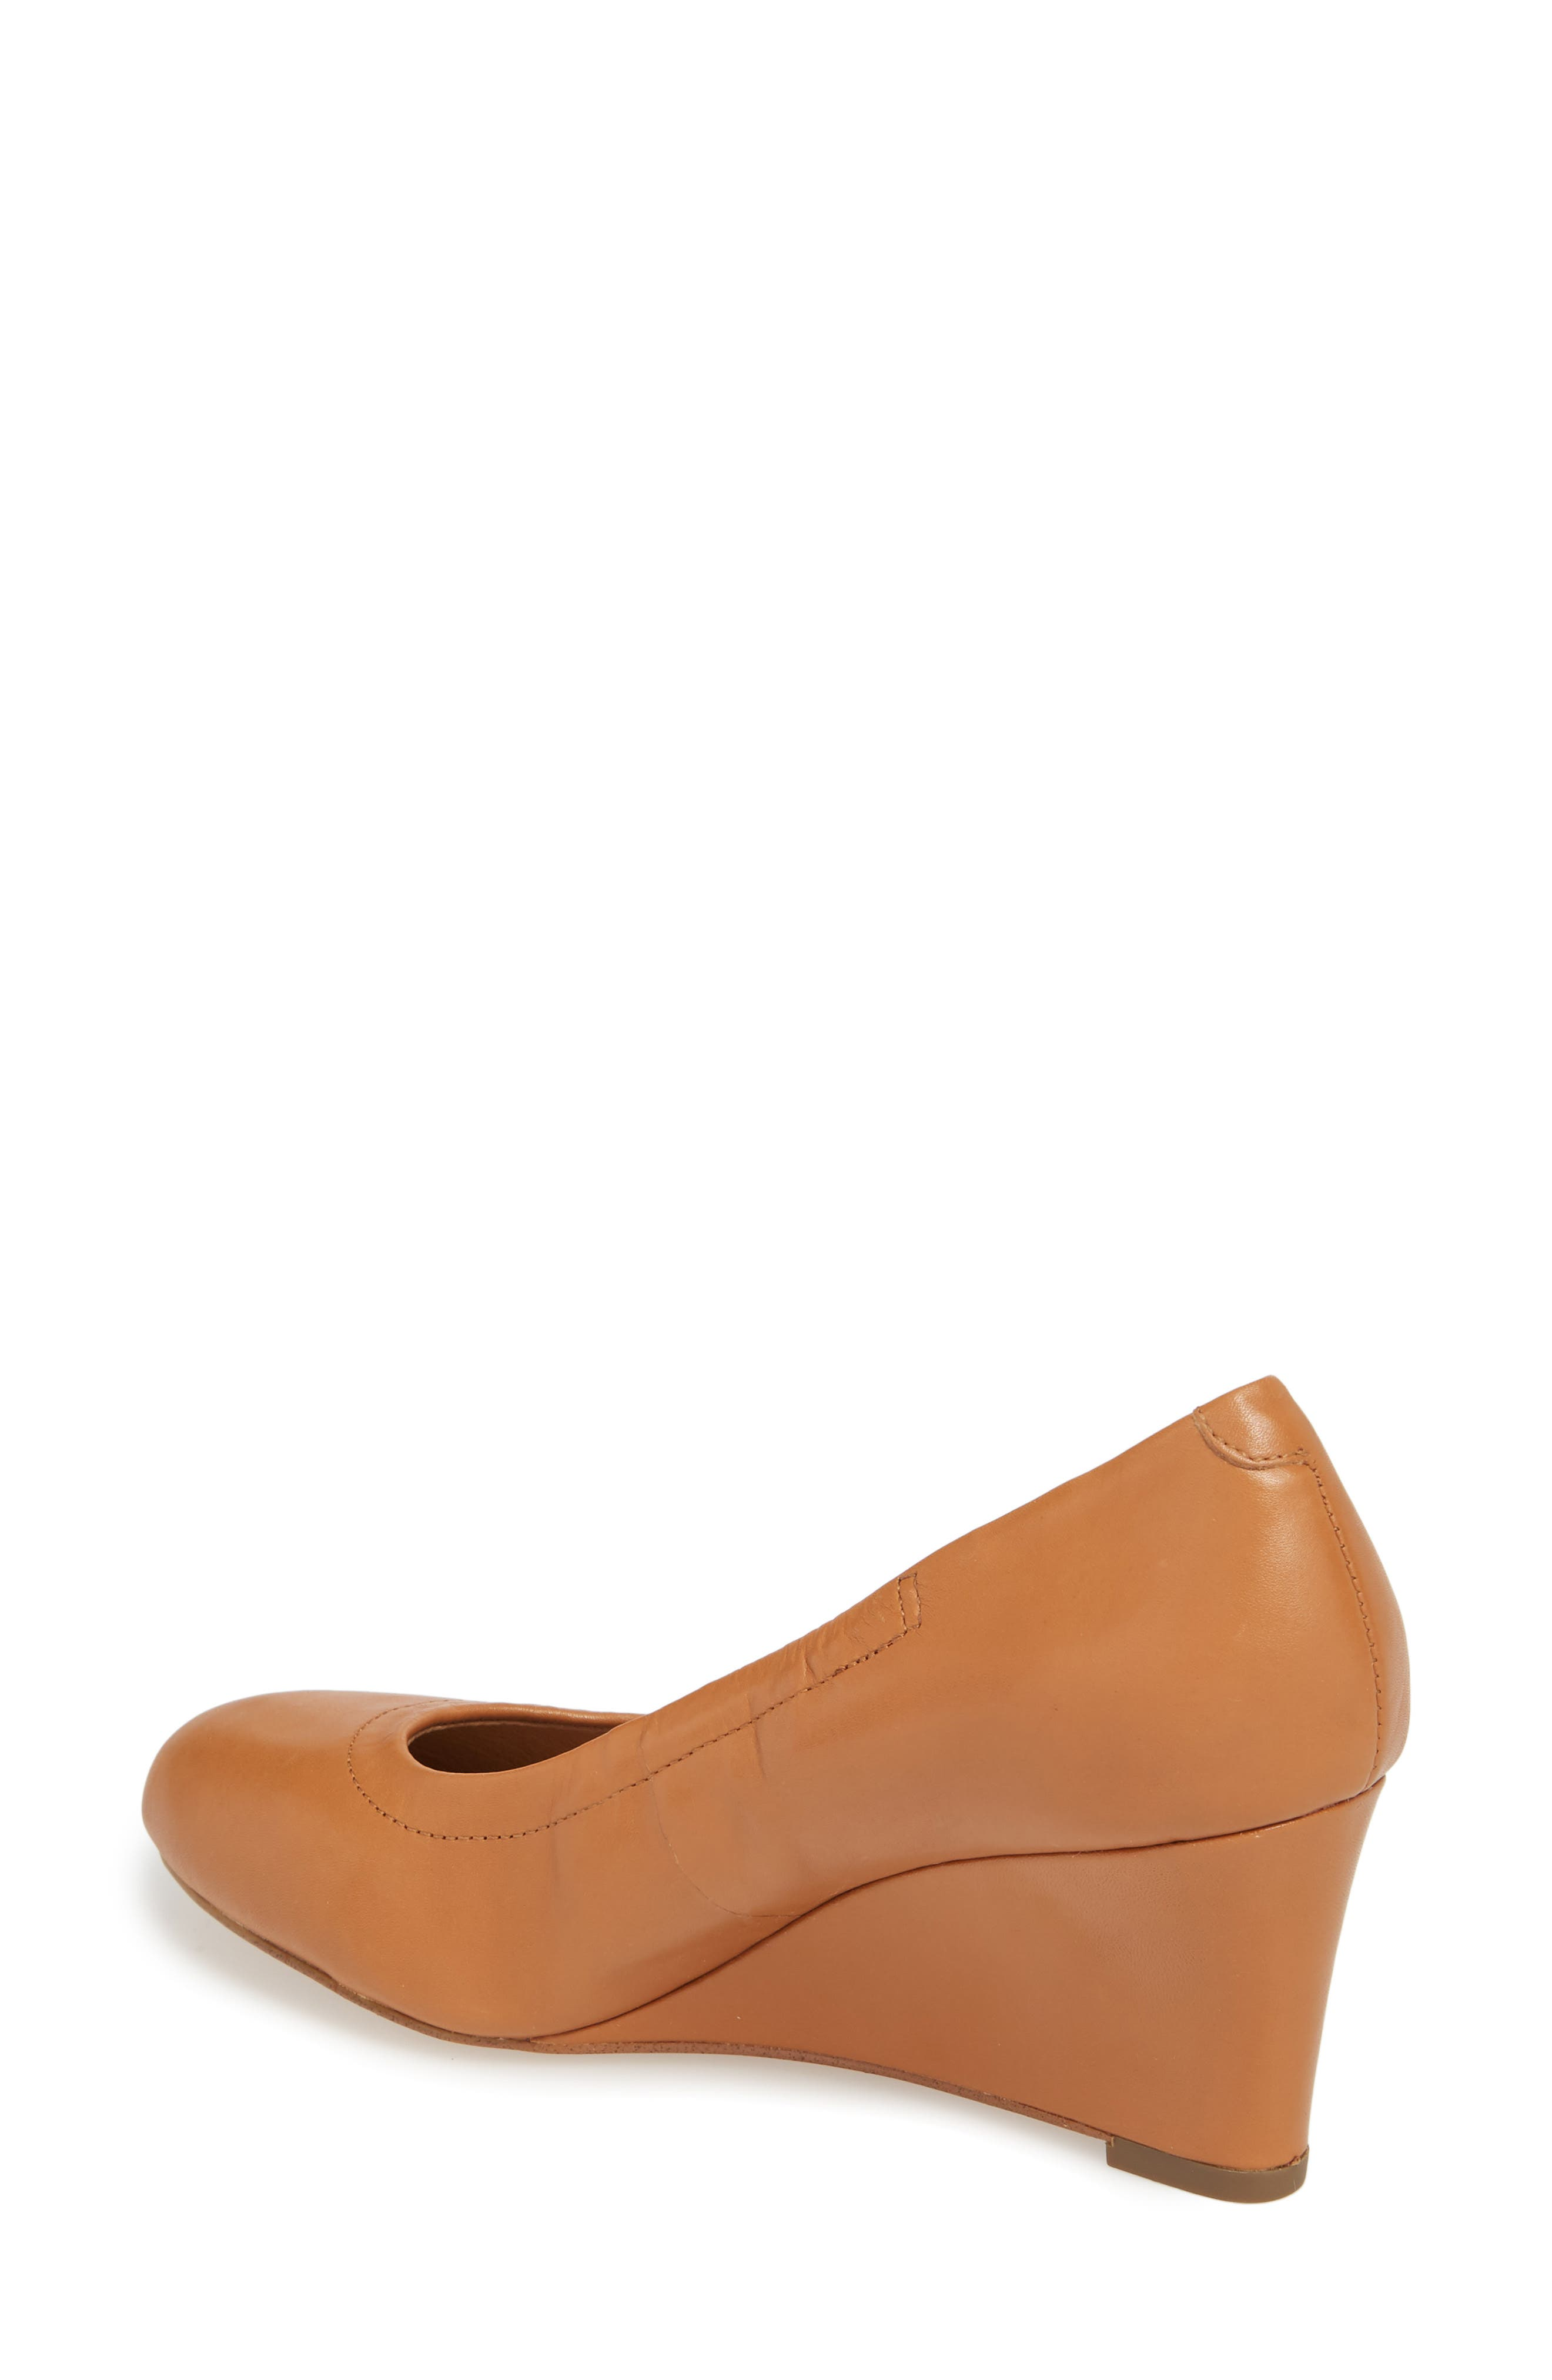 Camden Wedge,                             Alternate thumbnail 2, color,                             Tan Leather